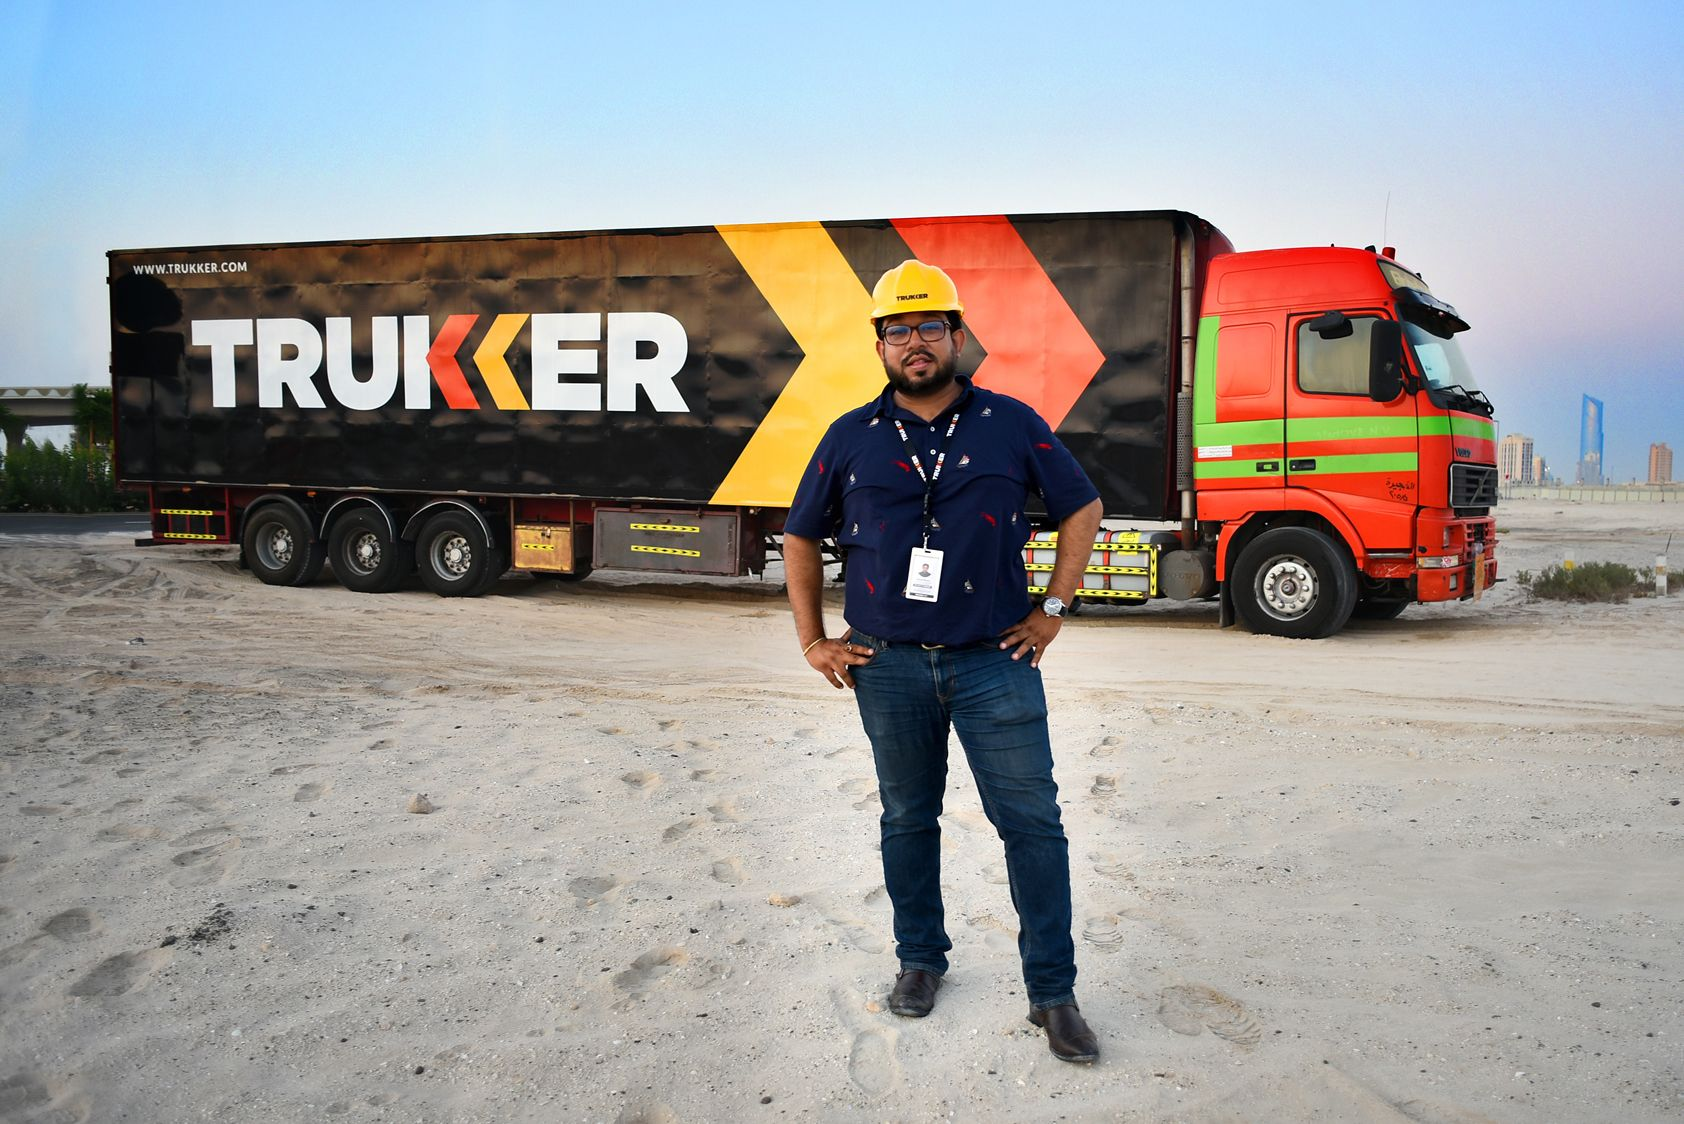 TruKKer raises $23 million in Series A